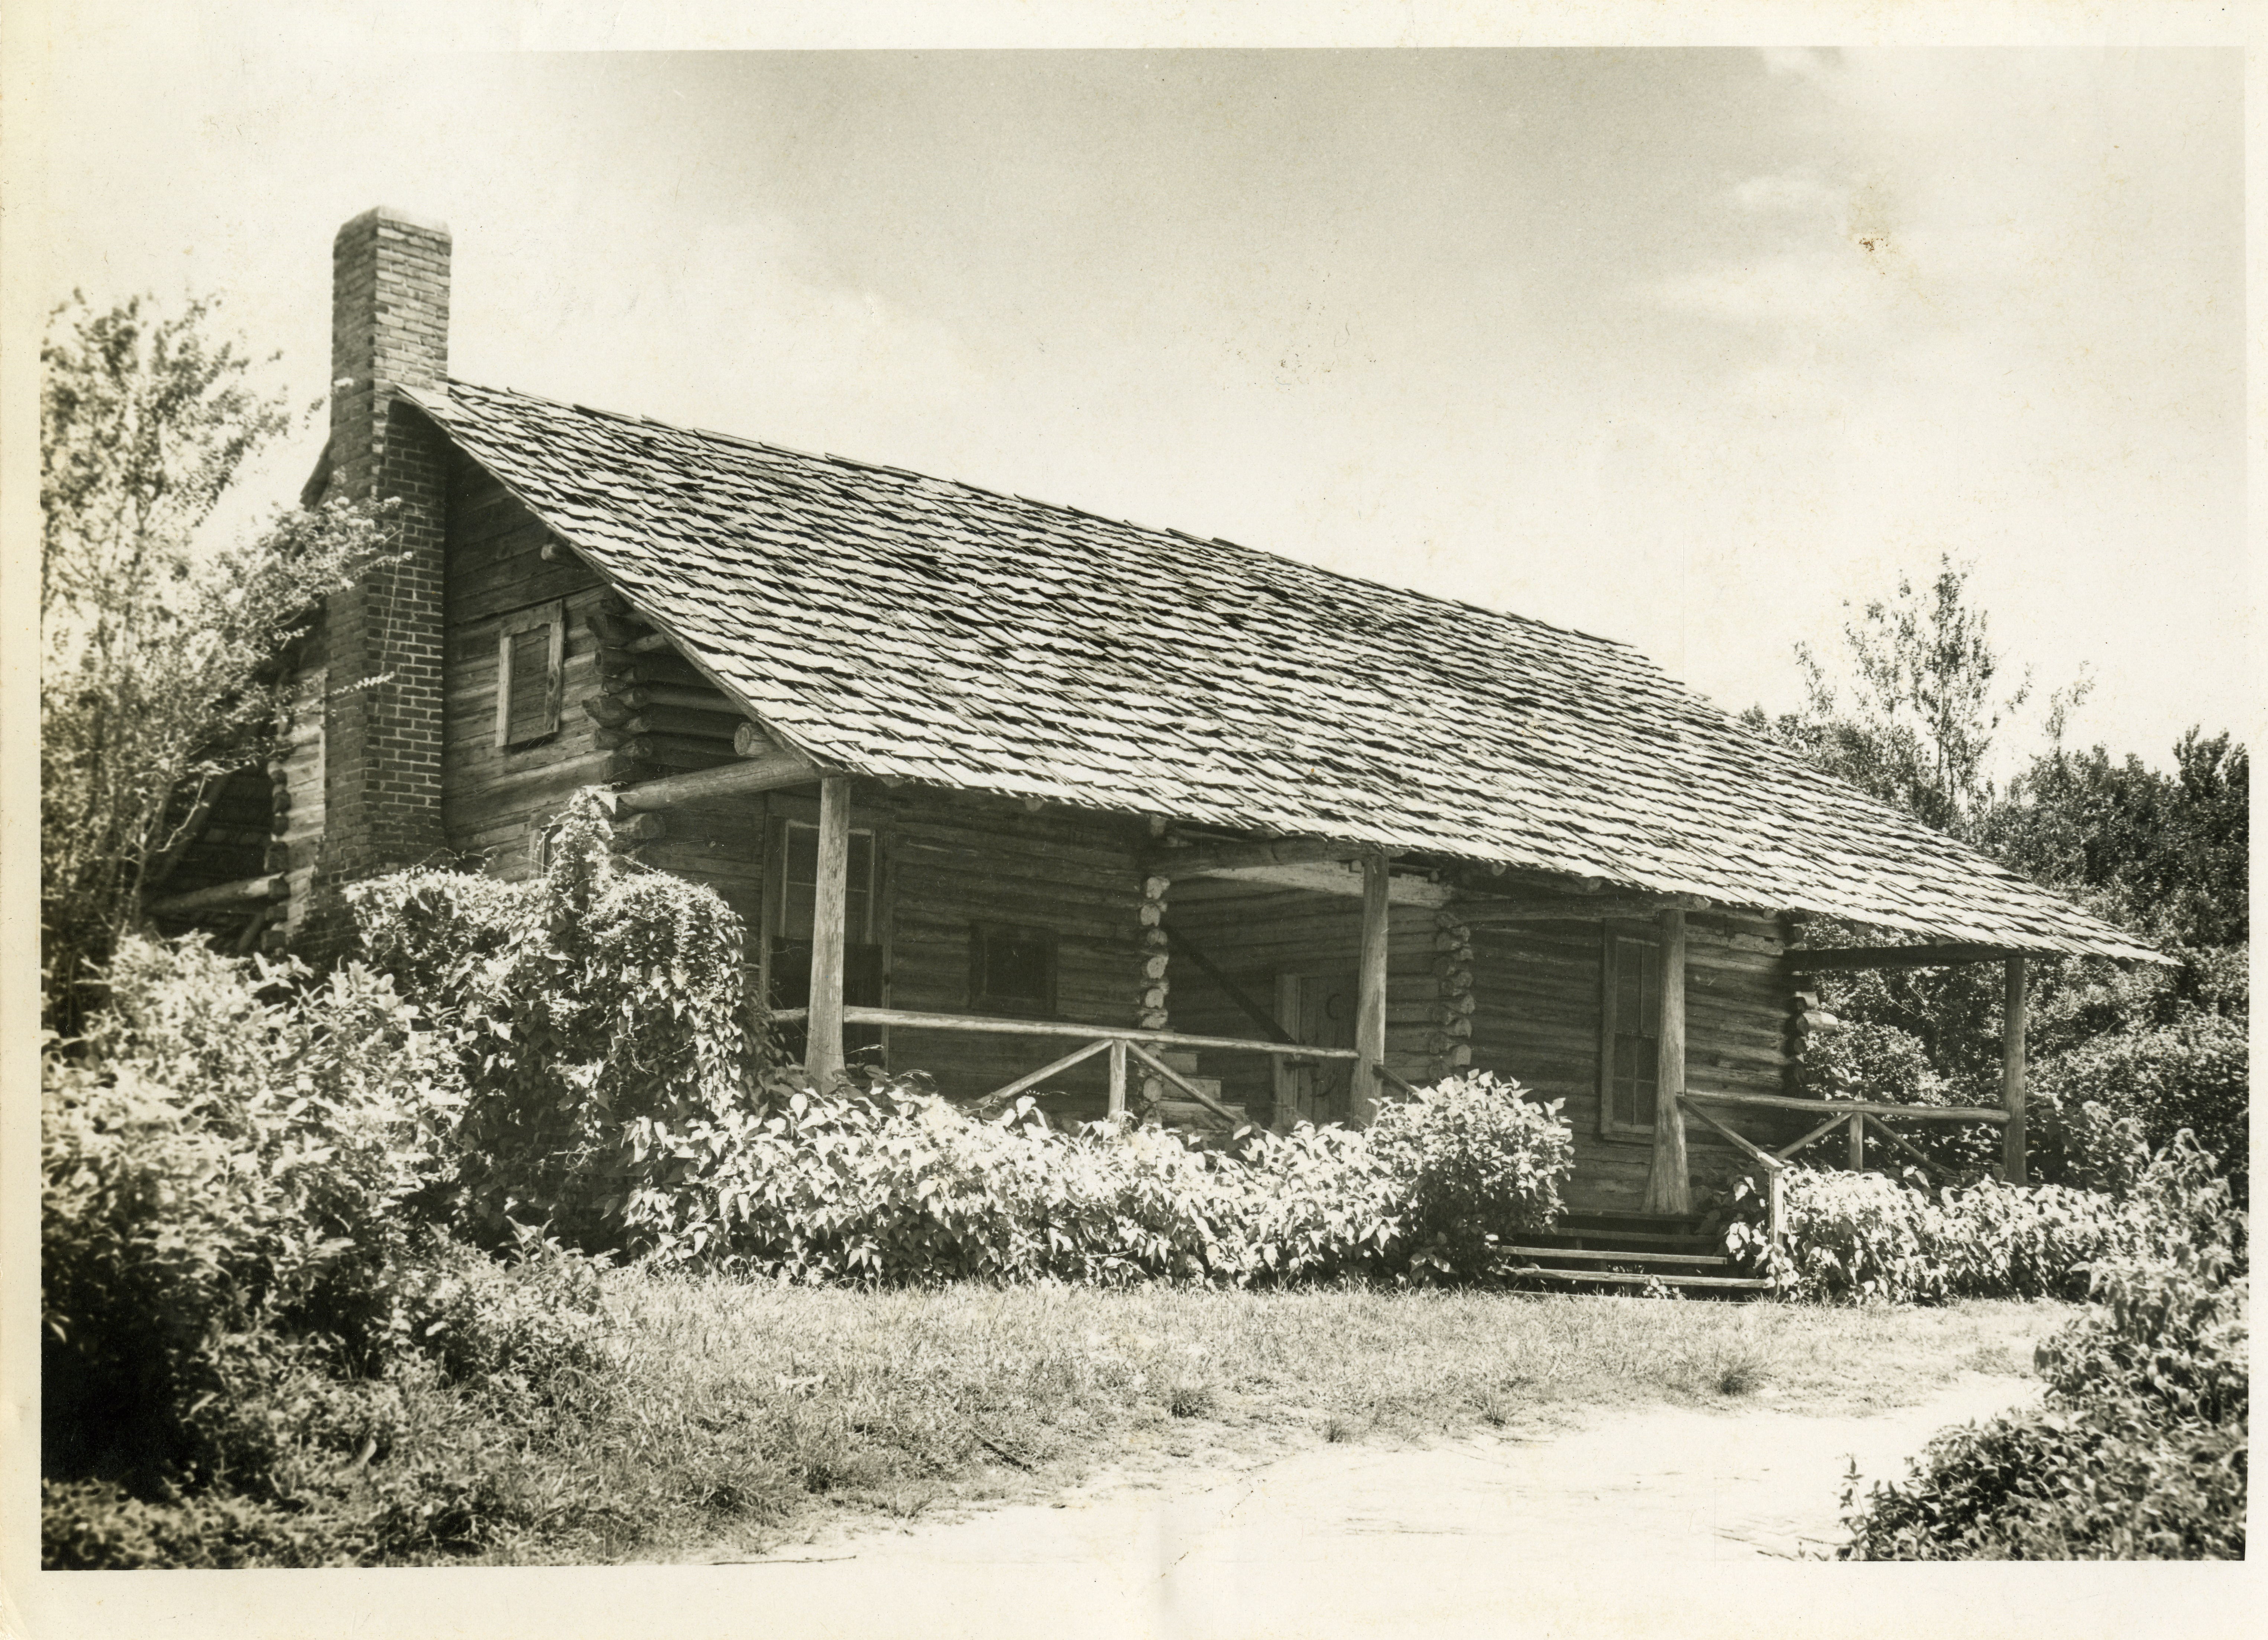 McMullen-Coachman Log Cabin, Clearwater, Florida, circa 1966.